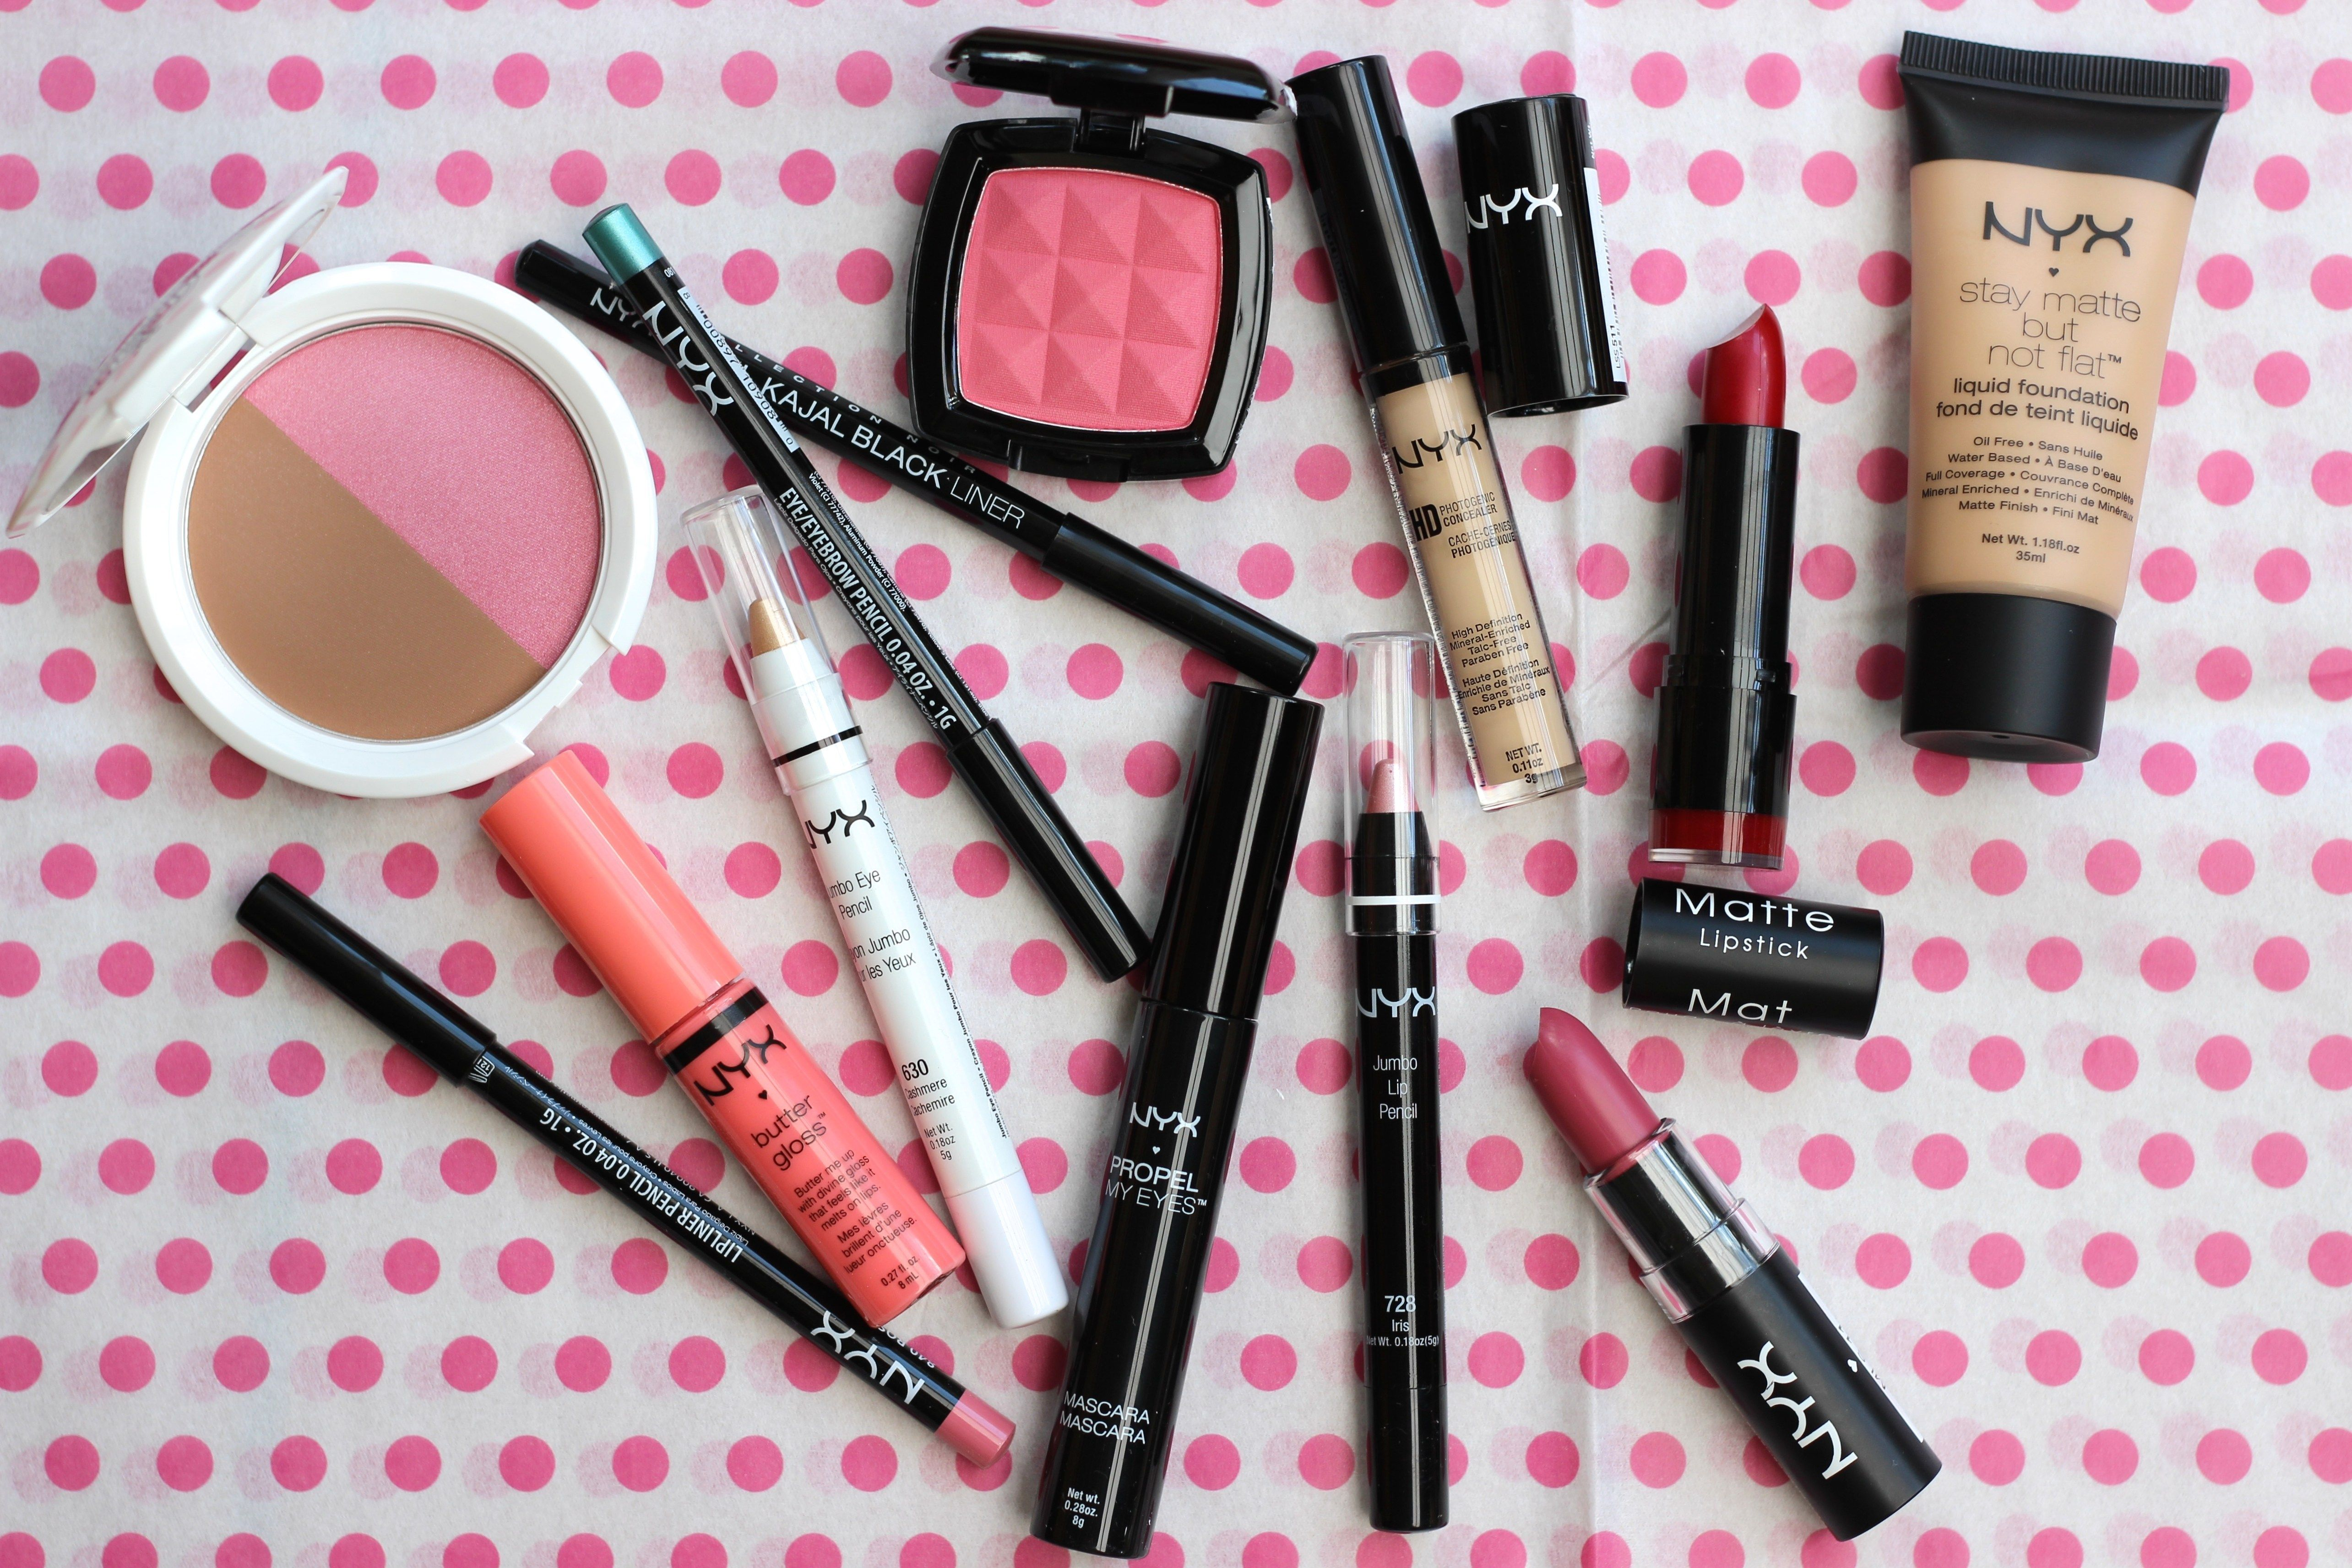 The 10 Best Products from NYX Cosmetics Nyx cosmetics